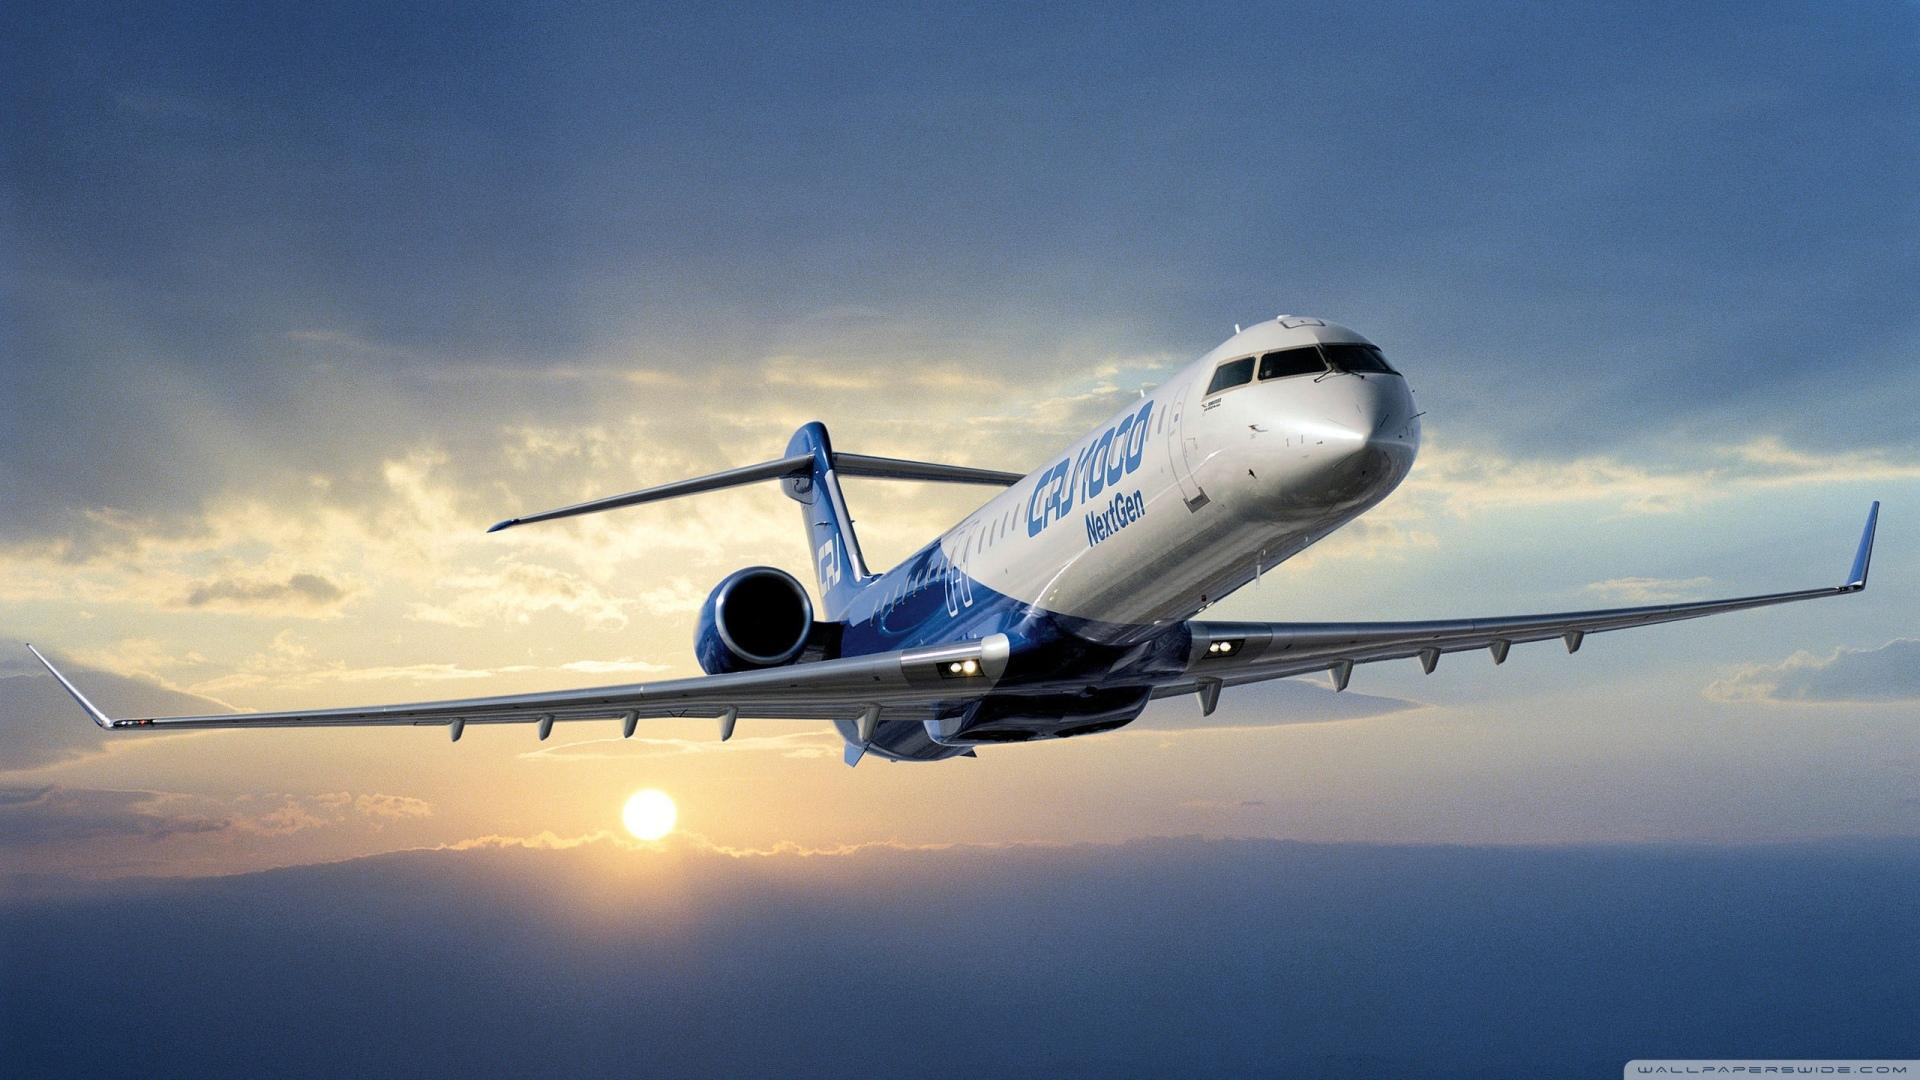 Bombardier Aerospace Cool Wallpapers Download